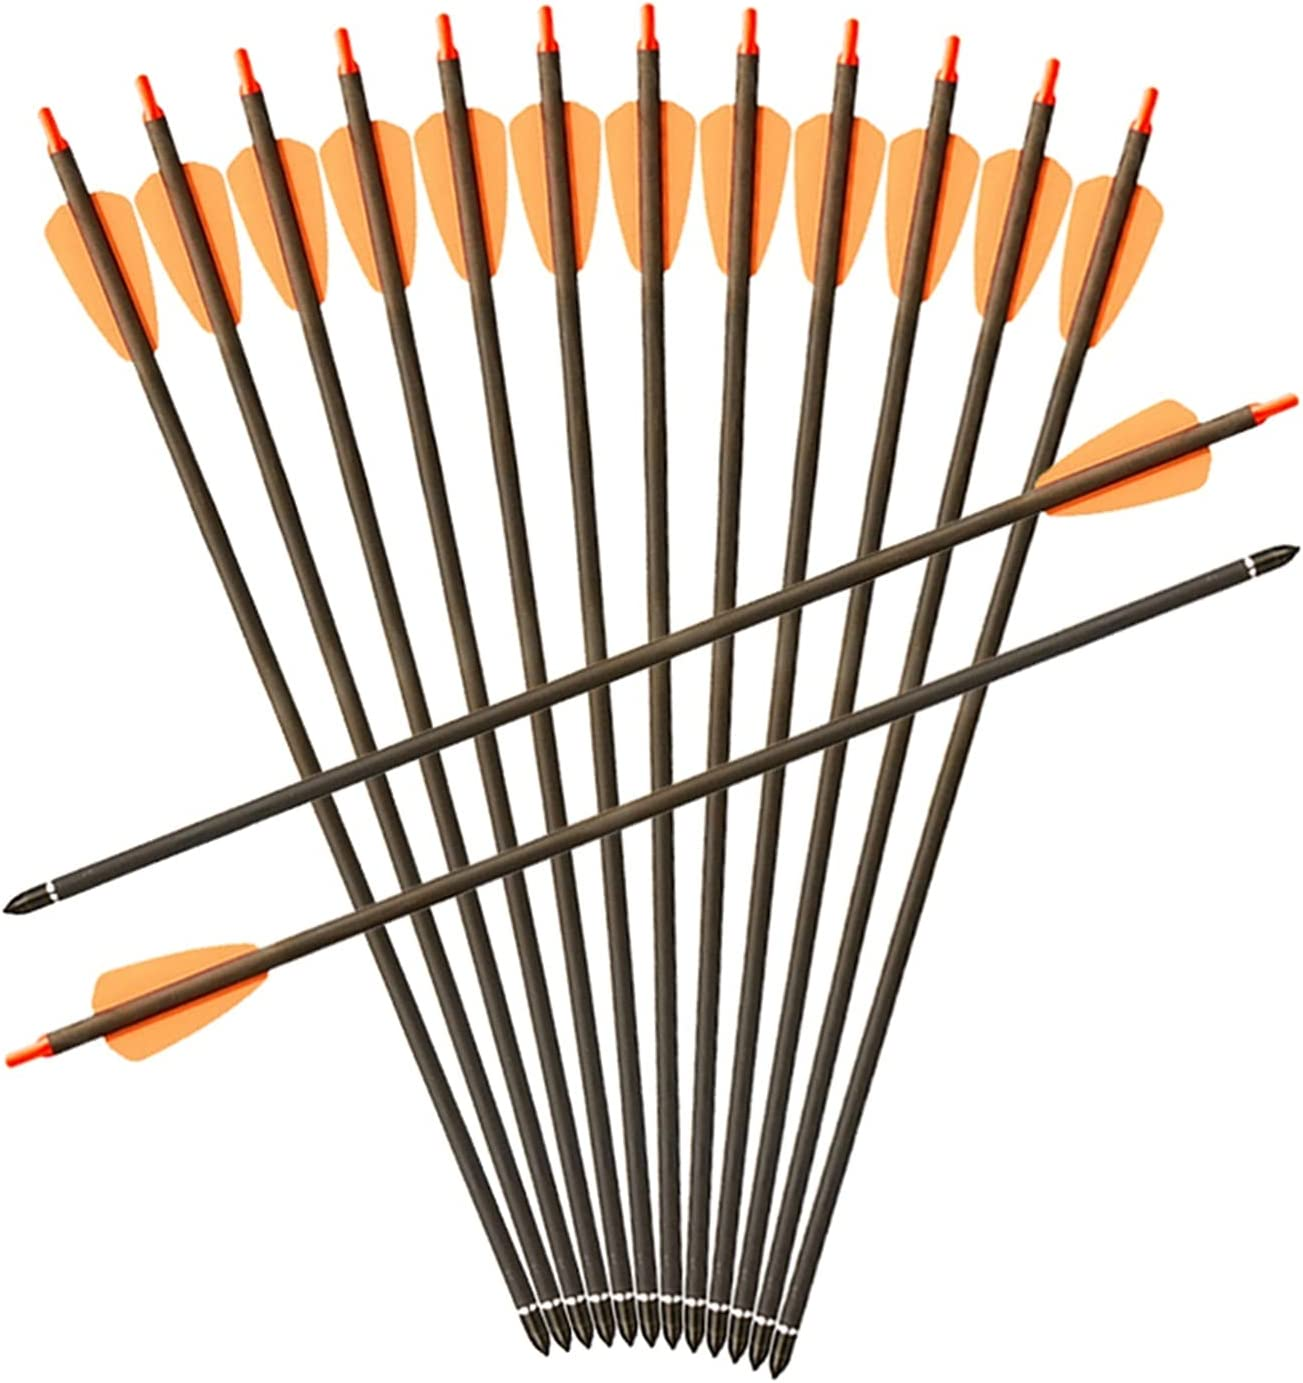 YJDSZD Hunting Archery SP350 Our shop most popular Pure Carbon 15inch Arrows Crossbow Las Vegas Mall